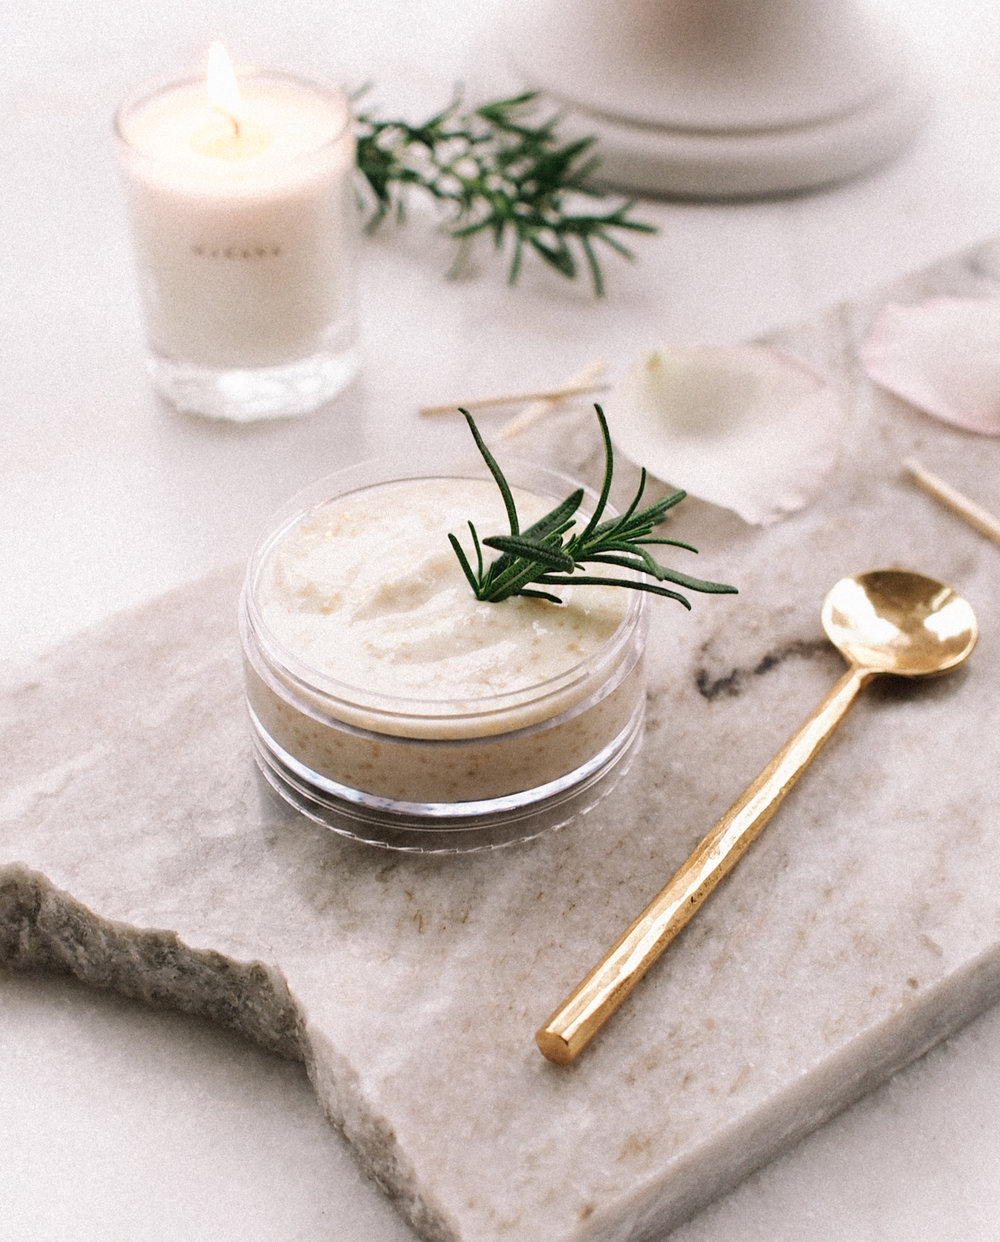 Homemade Rosemary + Coconut Oil Mask || A Fabulous Fete